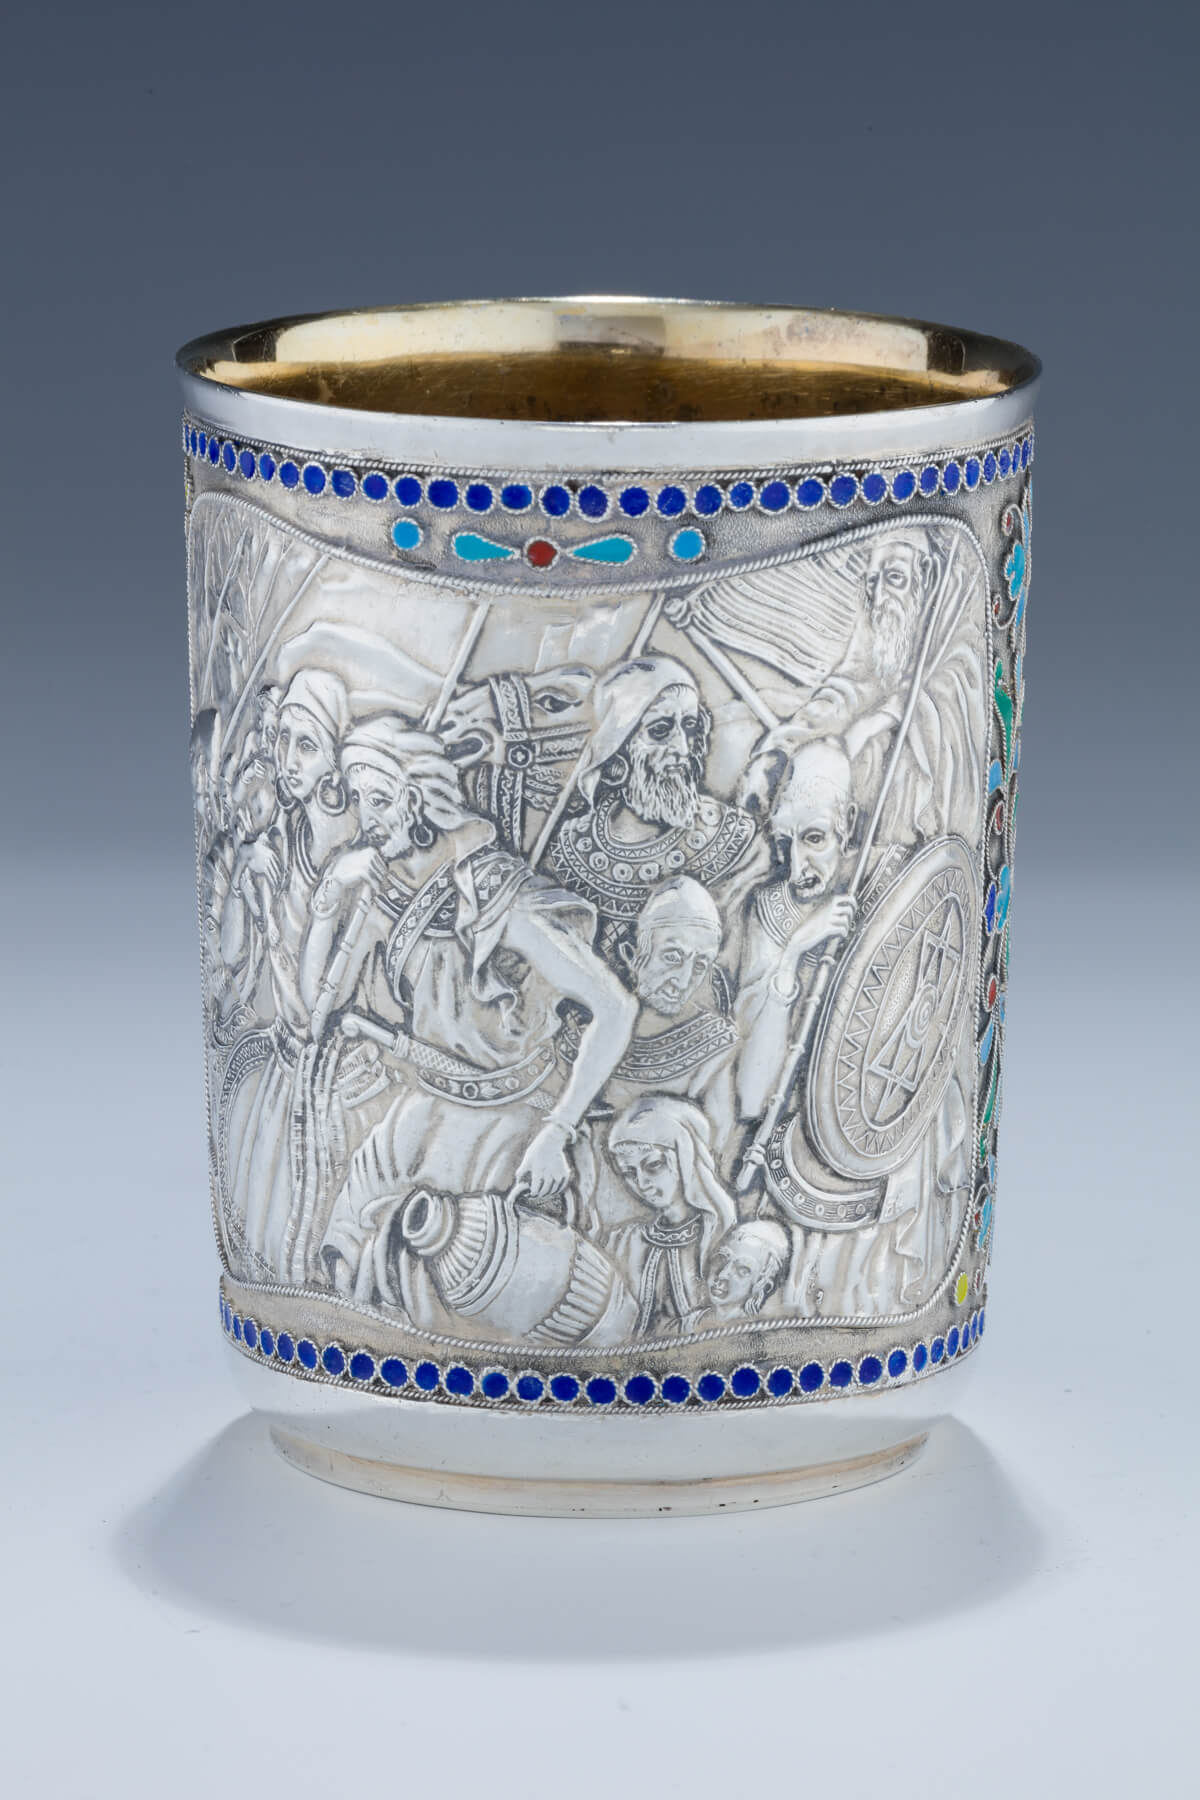 167. A Massive Silver and Enamel Kiddush Beaker by Henryk Winograd